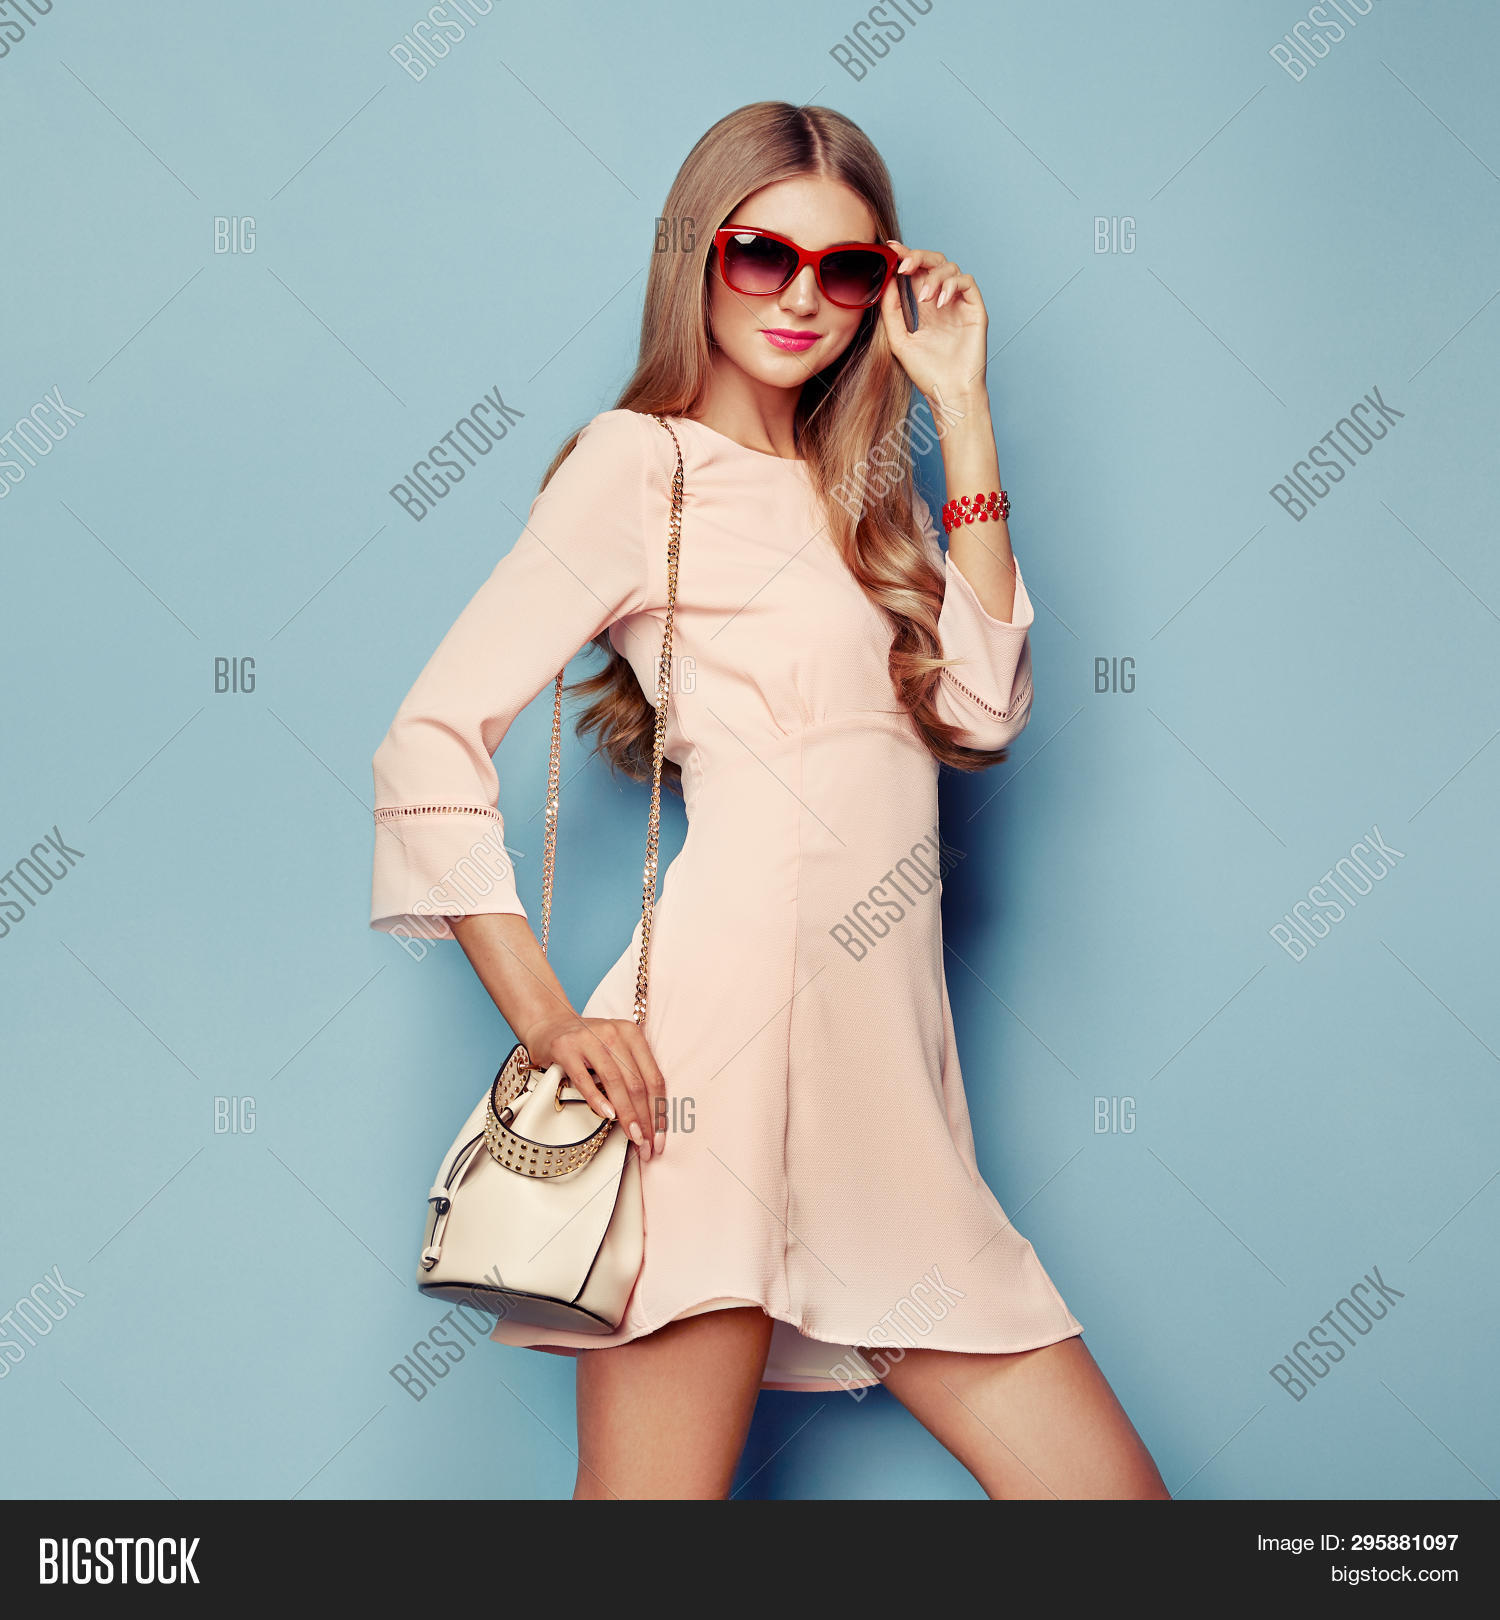 Portrait Of Fashion Young Woman In Pink Dress. Lady In Stylish Coral Summer Outfit. Girl Posing On A